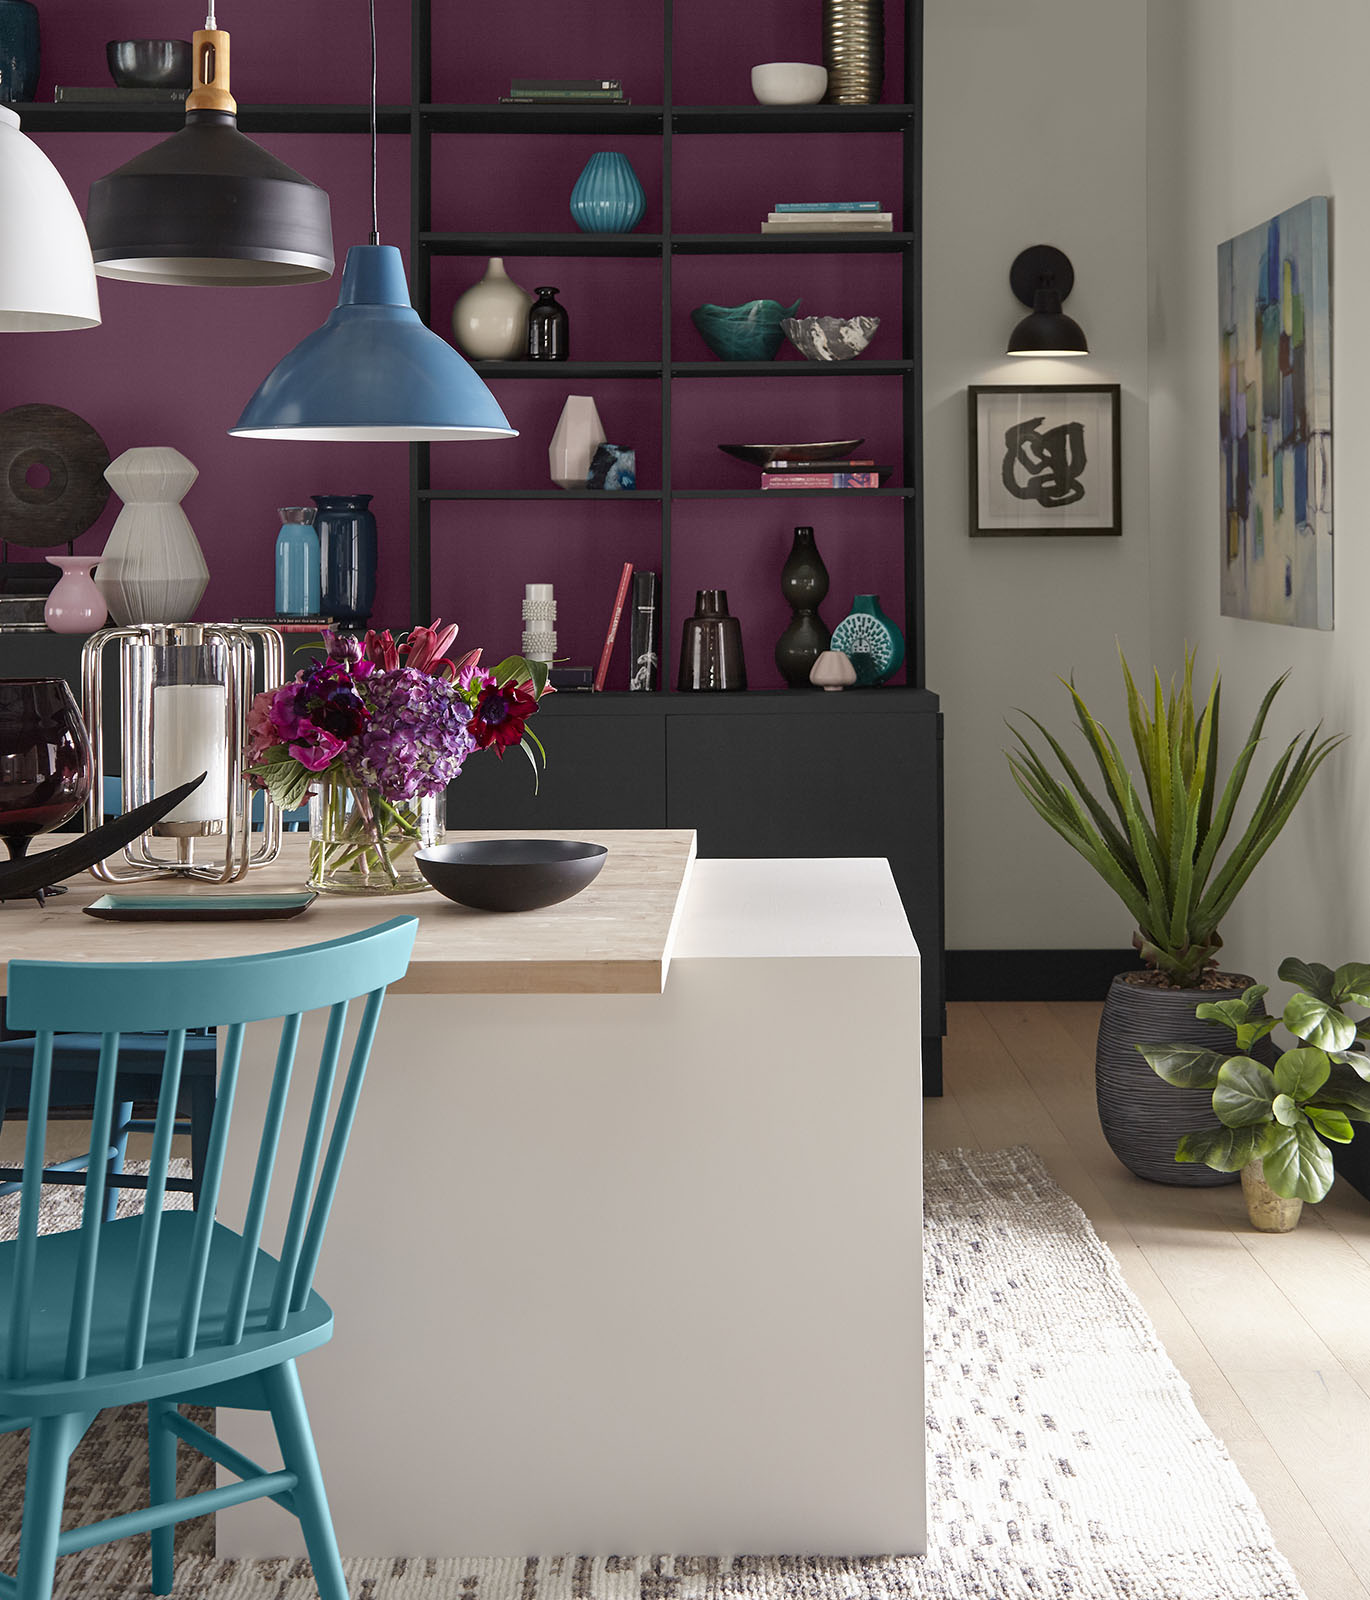 BEHR Color Trends 2021 Optimistic View Interior Color Inspiration